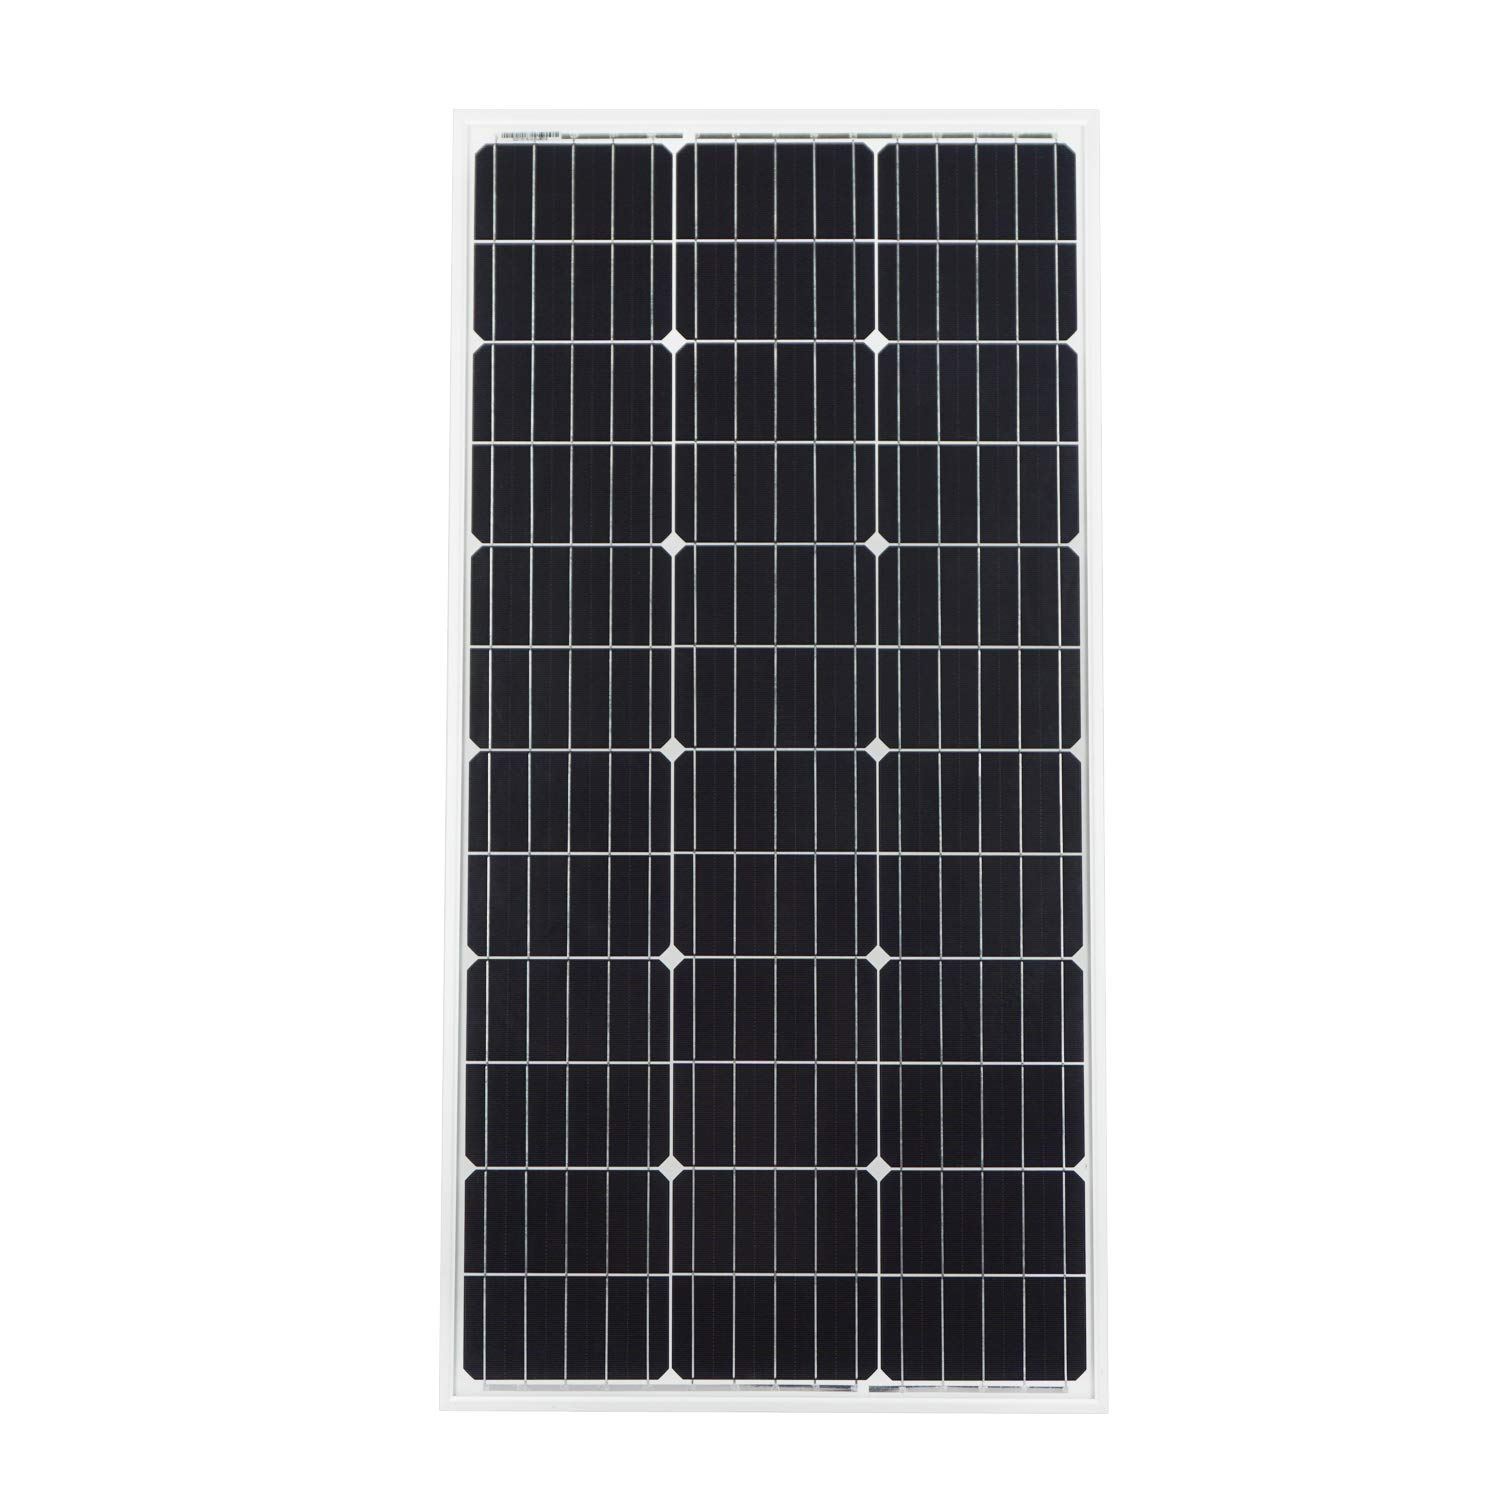 ECO-WORTHY 100 Watt 12 Volt Monocrystalline Solar Panel for RV Boat 12V Home Power